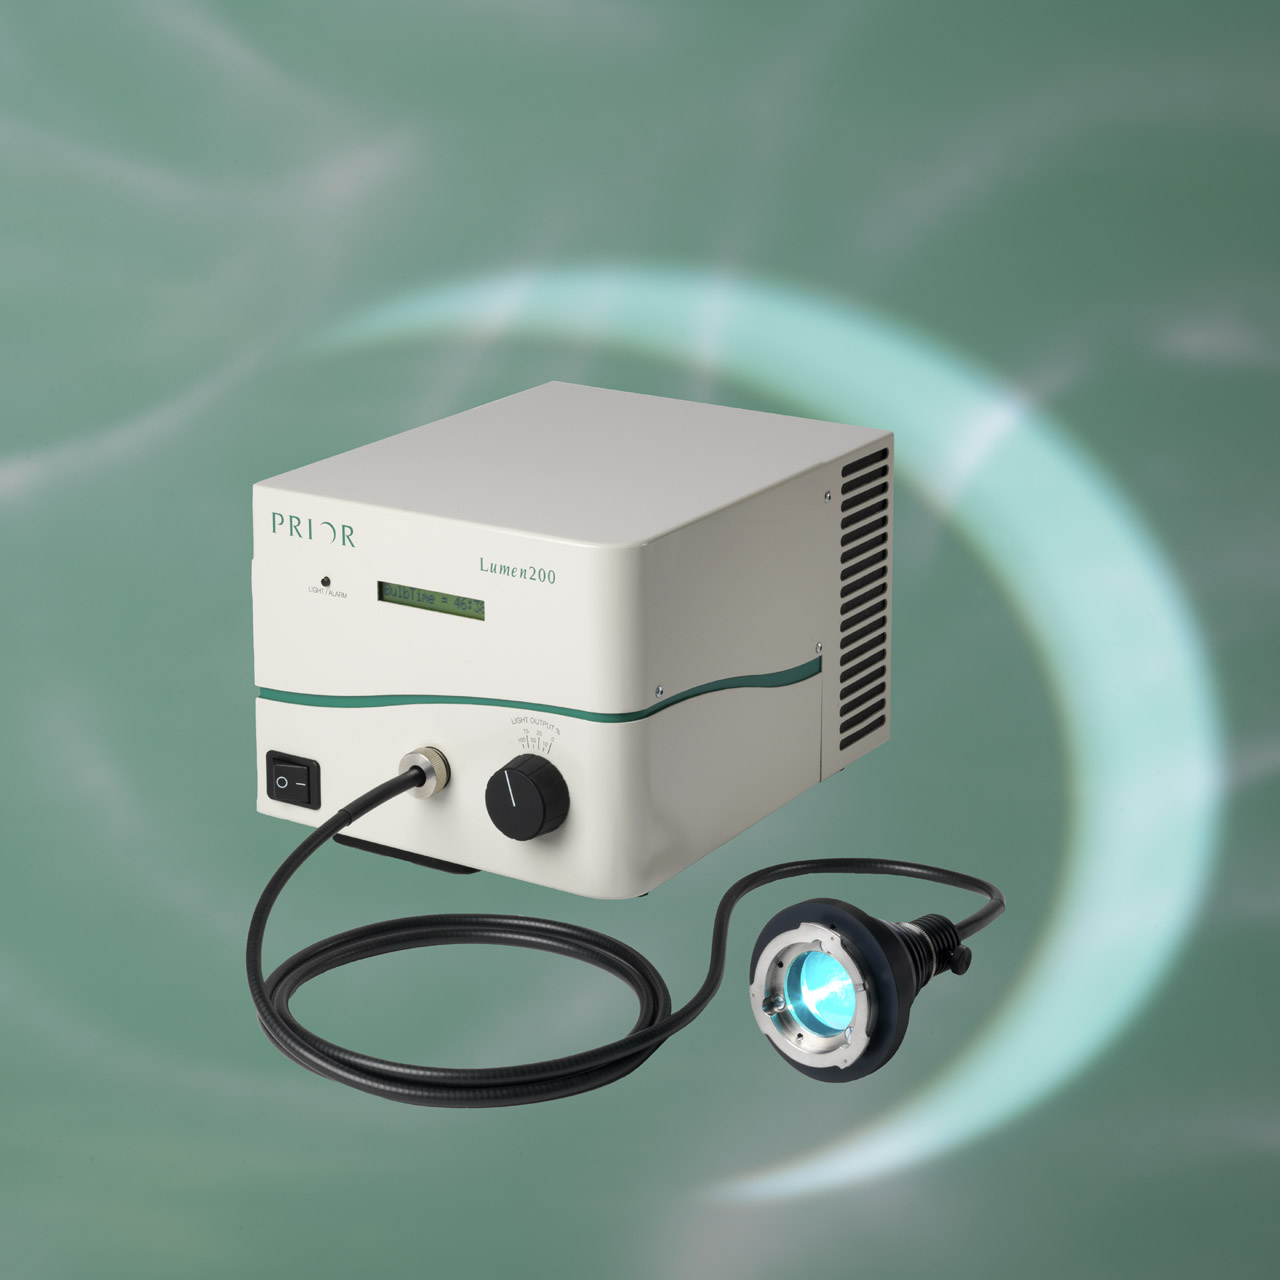 Exciting Illumination for Fluorescence Microscopy in the Shape of the Lumen200 – the brighter, longer lasting, easier to use Fluorescence Illuminator.